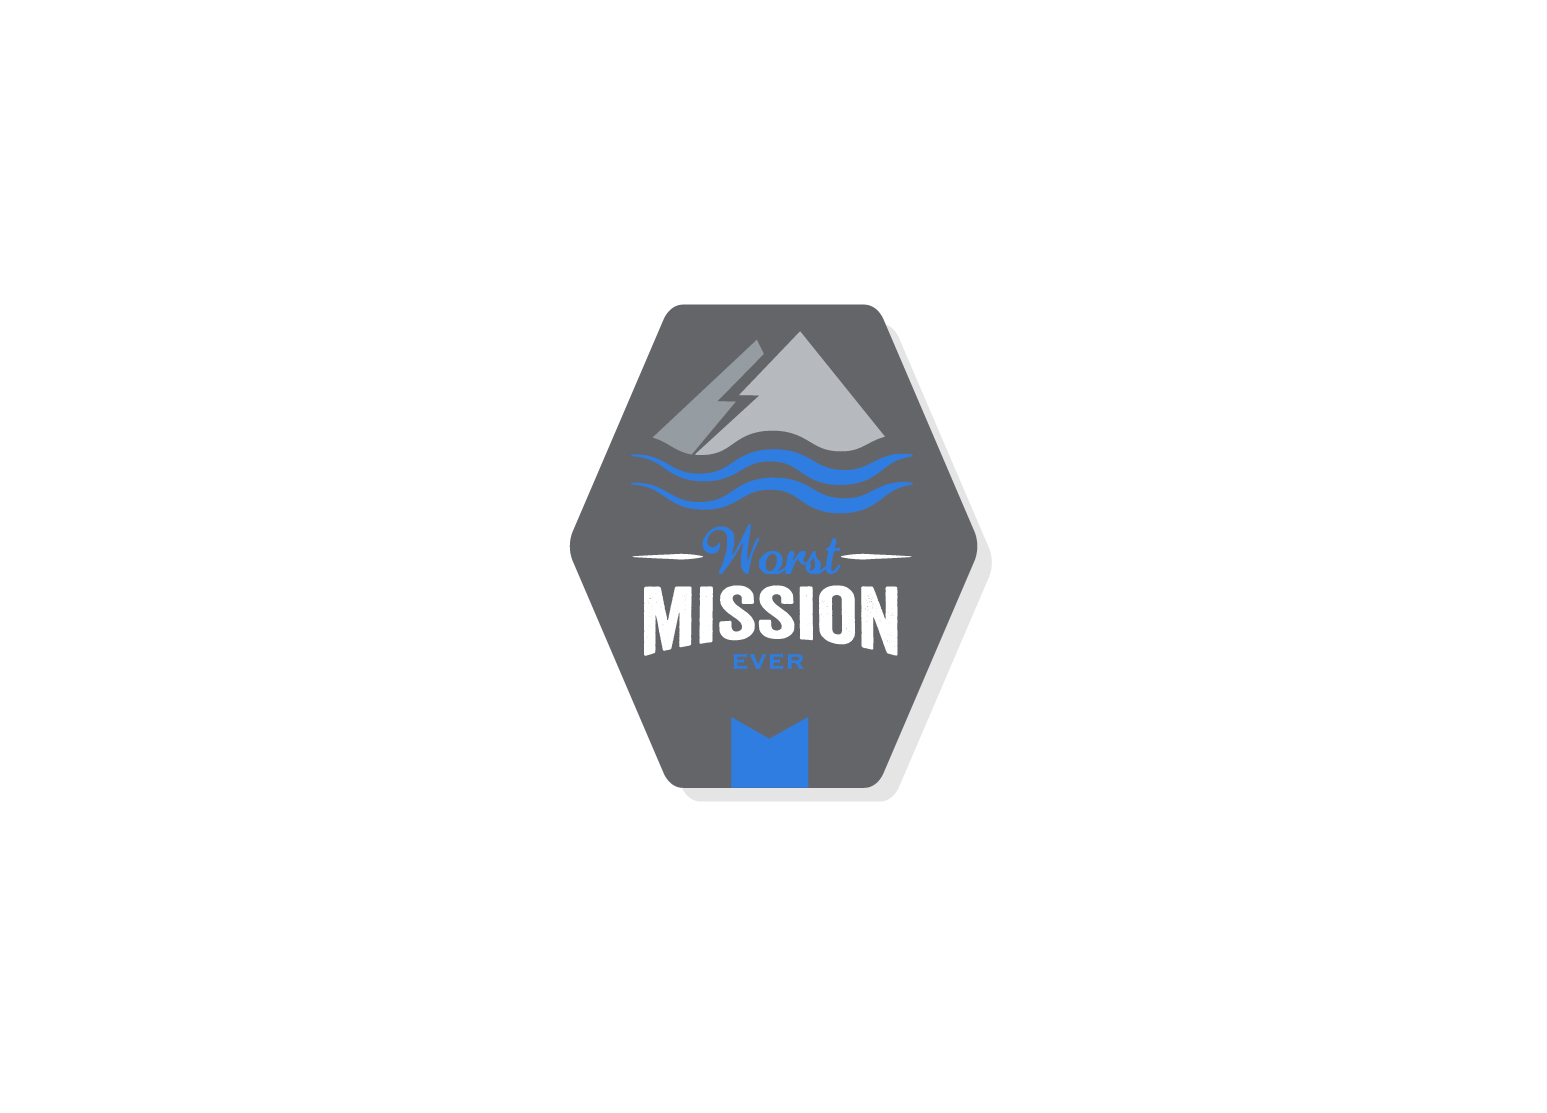 WorstMissionEver-logo-02